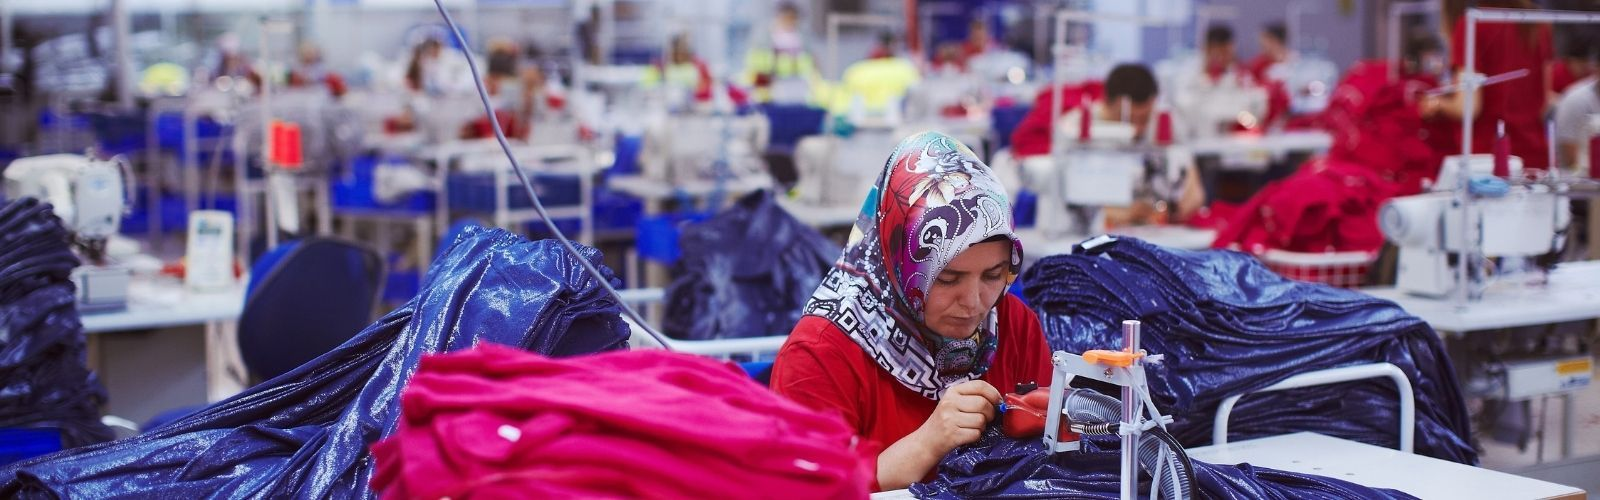 Uyghur and other minorities working in a forced labor factory in Xinjiang, China.